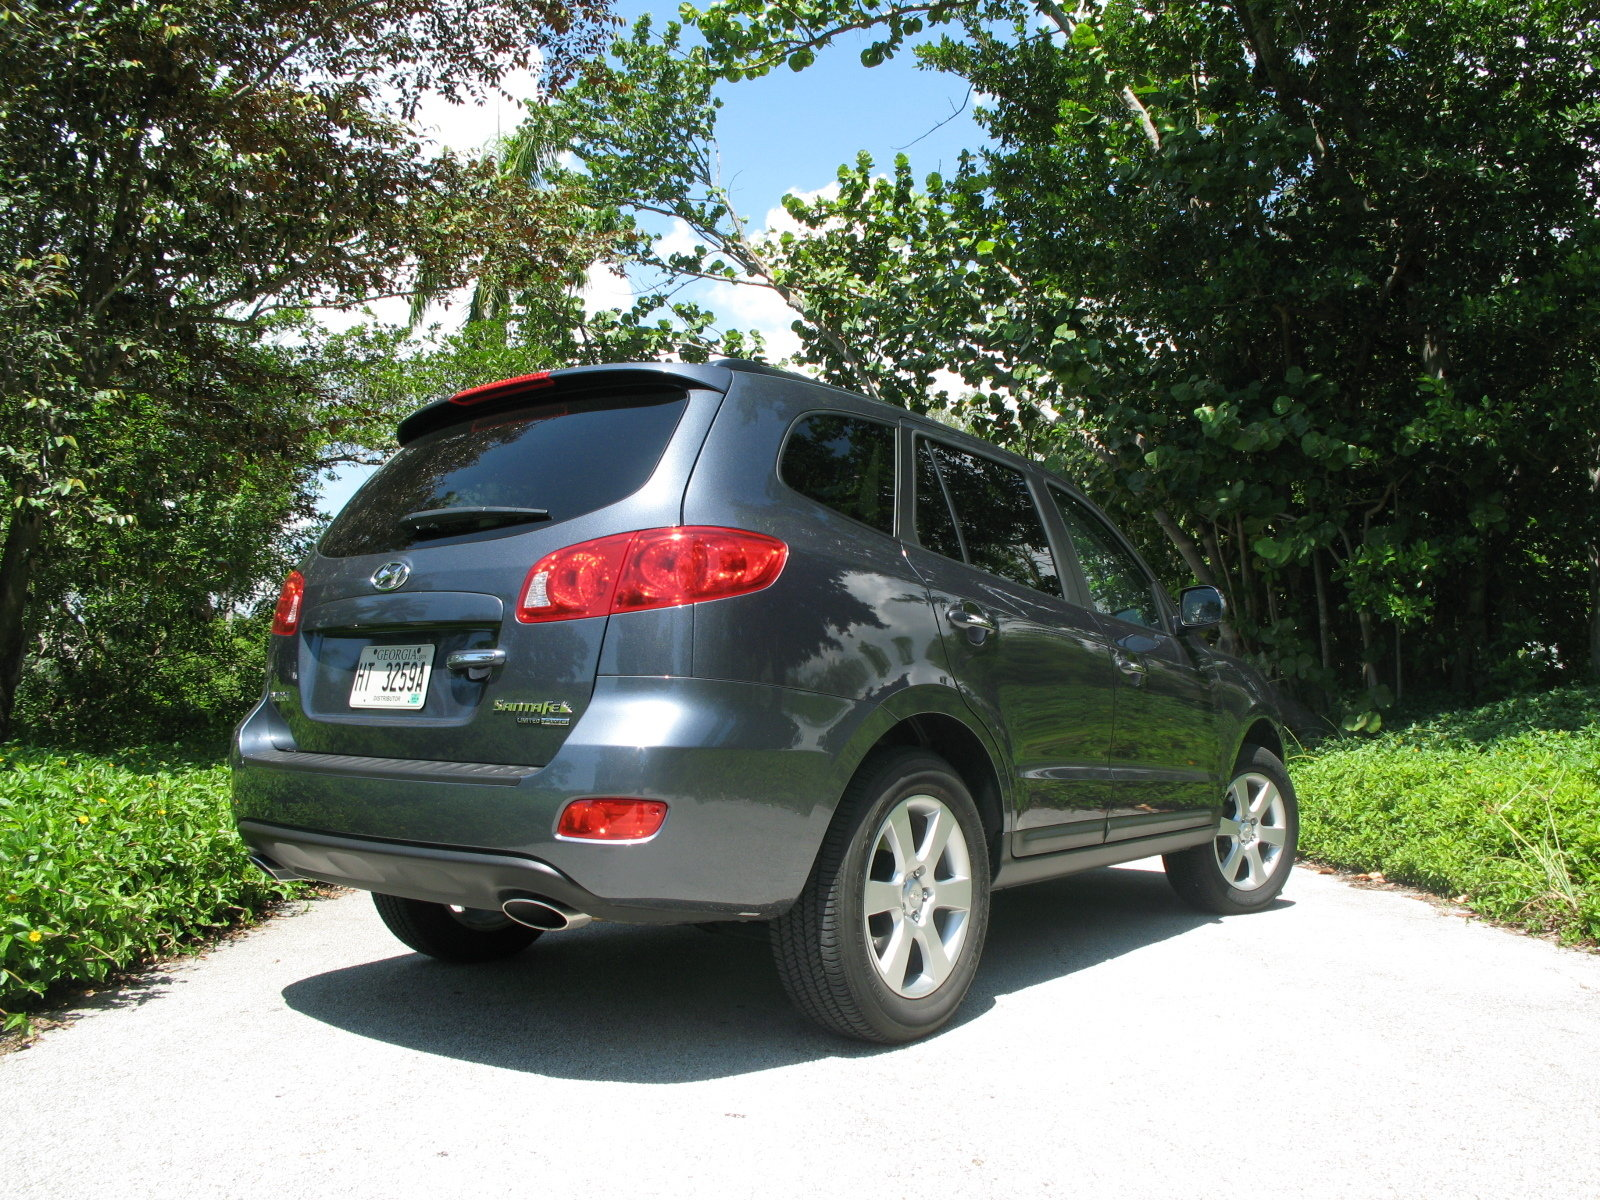 2008 hyundai santa fe limited awd picture 261828 car review top speed. Black Bedroom Furniture Sets. Home Design Ideas